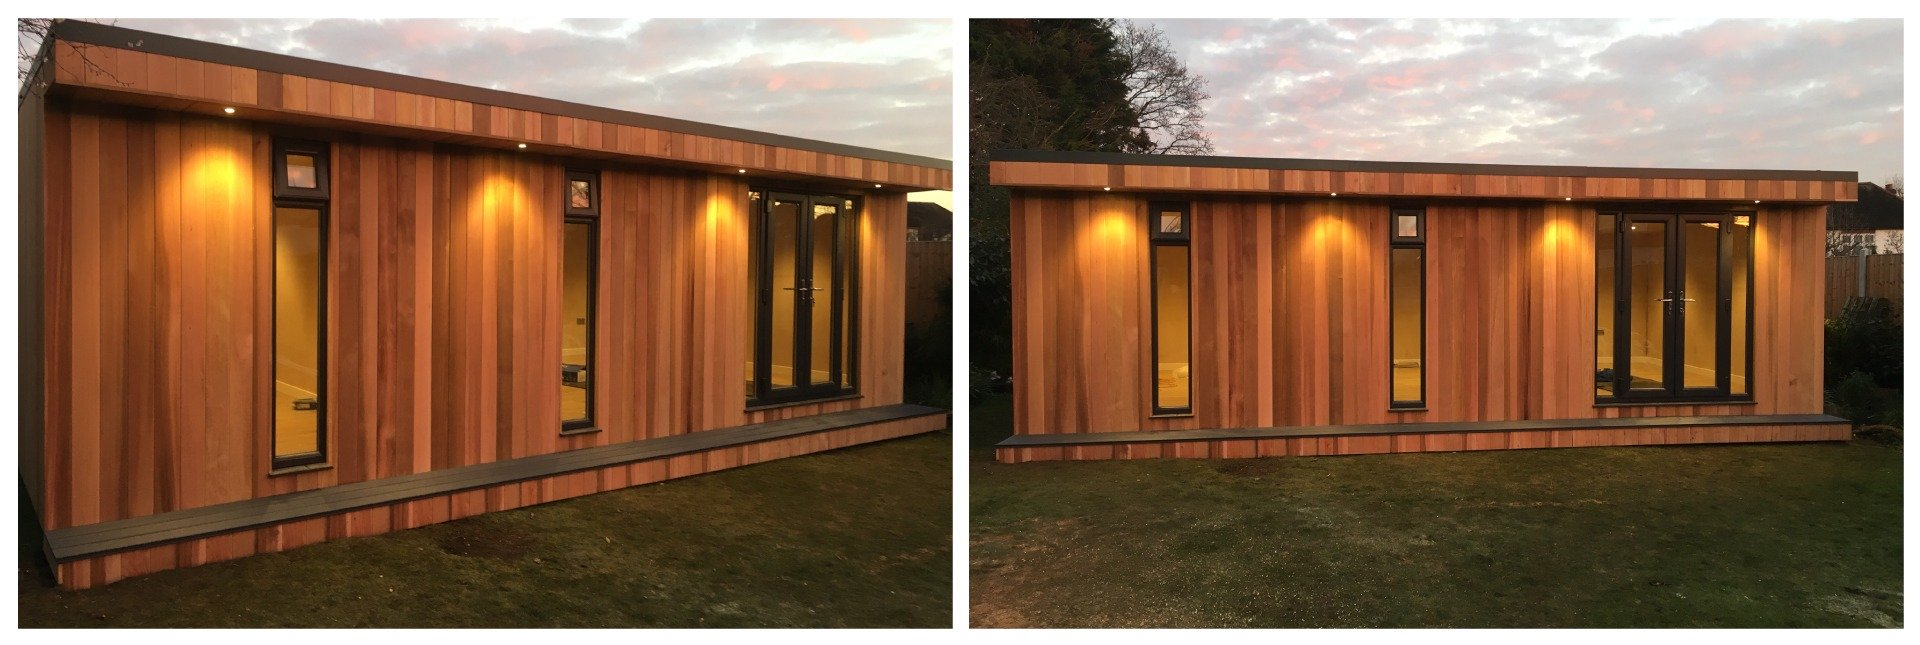 garden room with double doors front and angled